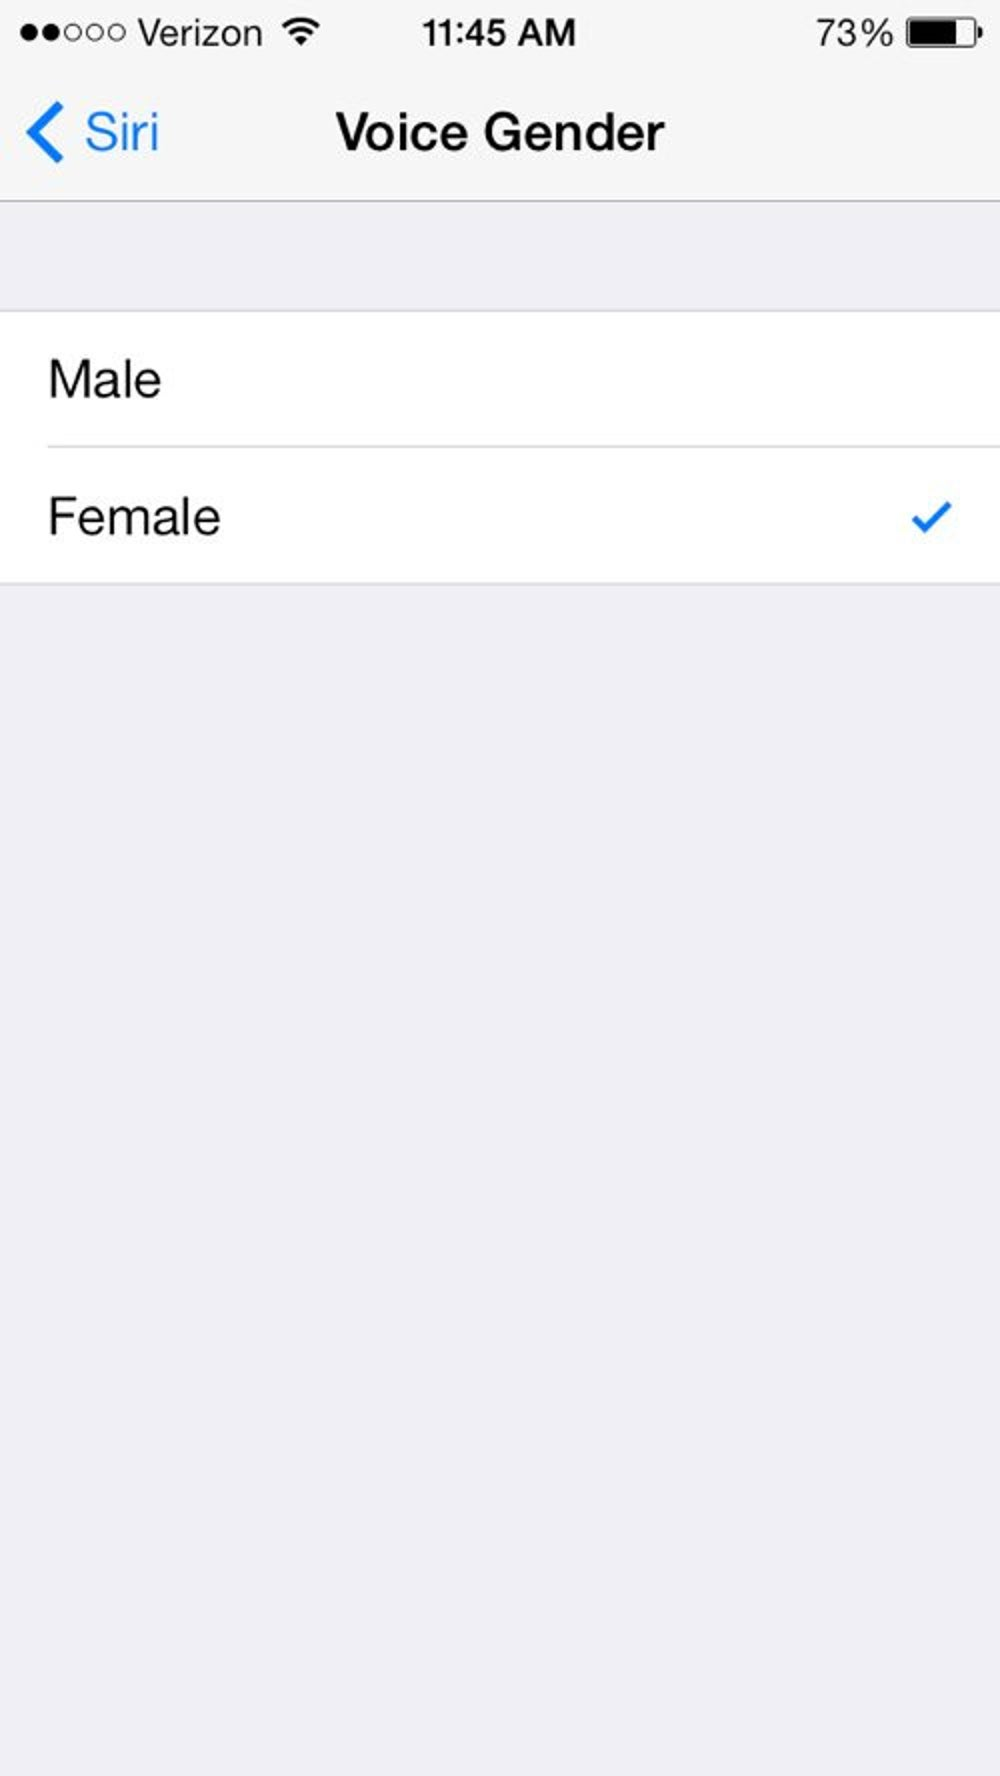 You can also switch Siri's voice to male if you want. Go to Settings > General > Siri > Voice Gender.